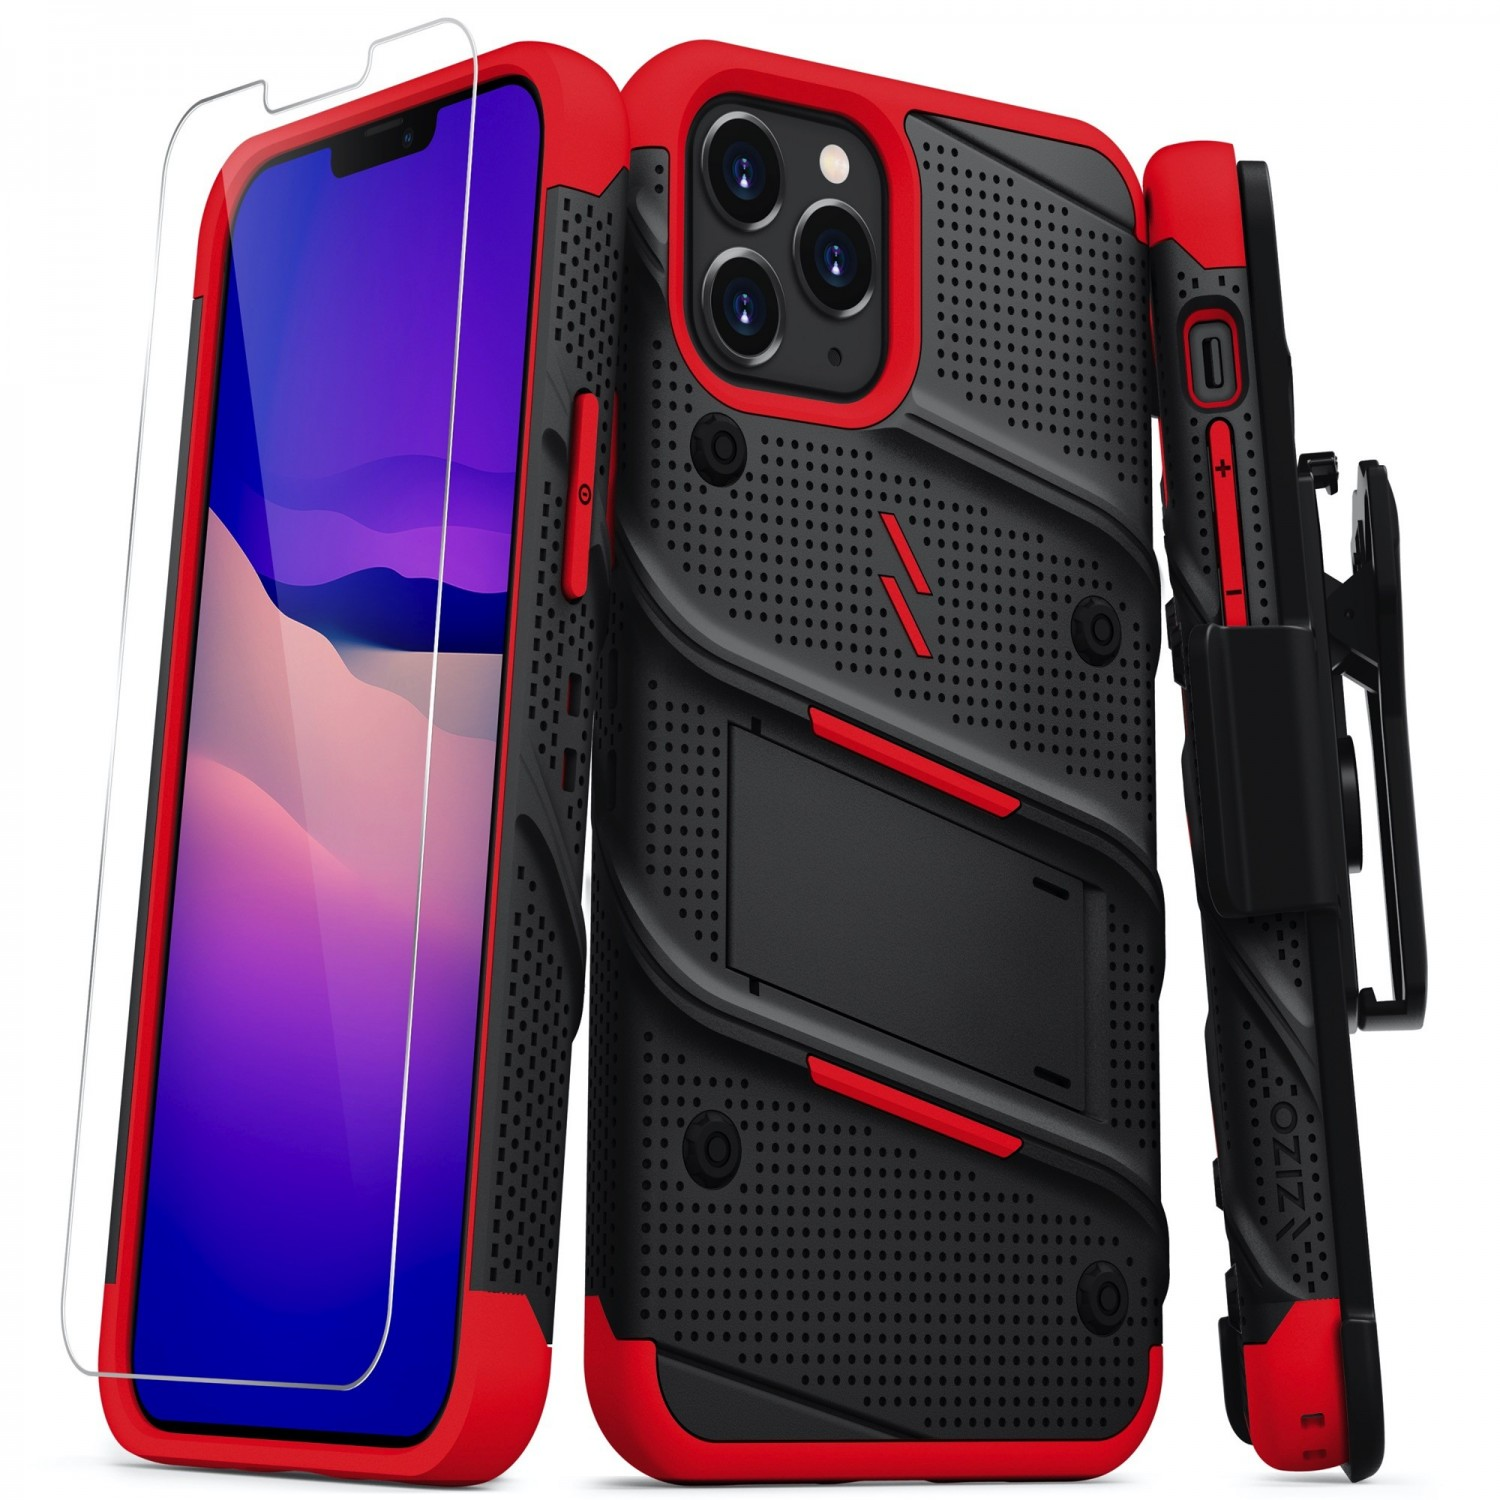 Case - Zizo Bolt Case for iPhone 12 y 12 PRO Black/Red